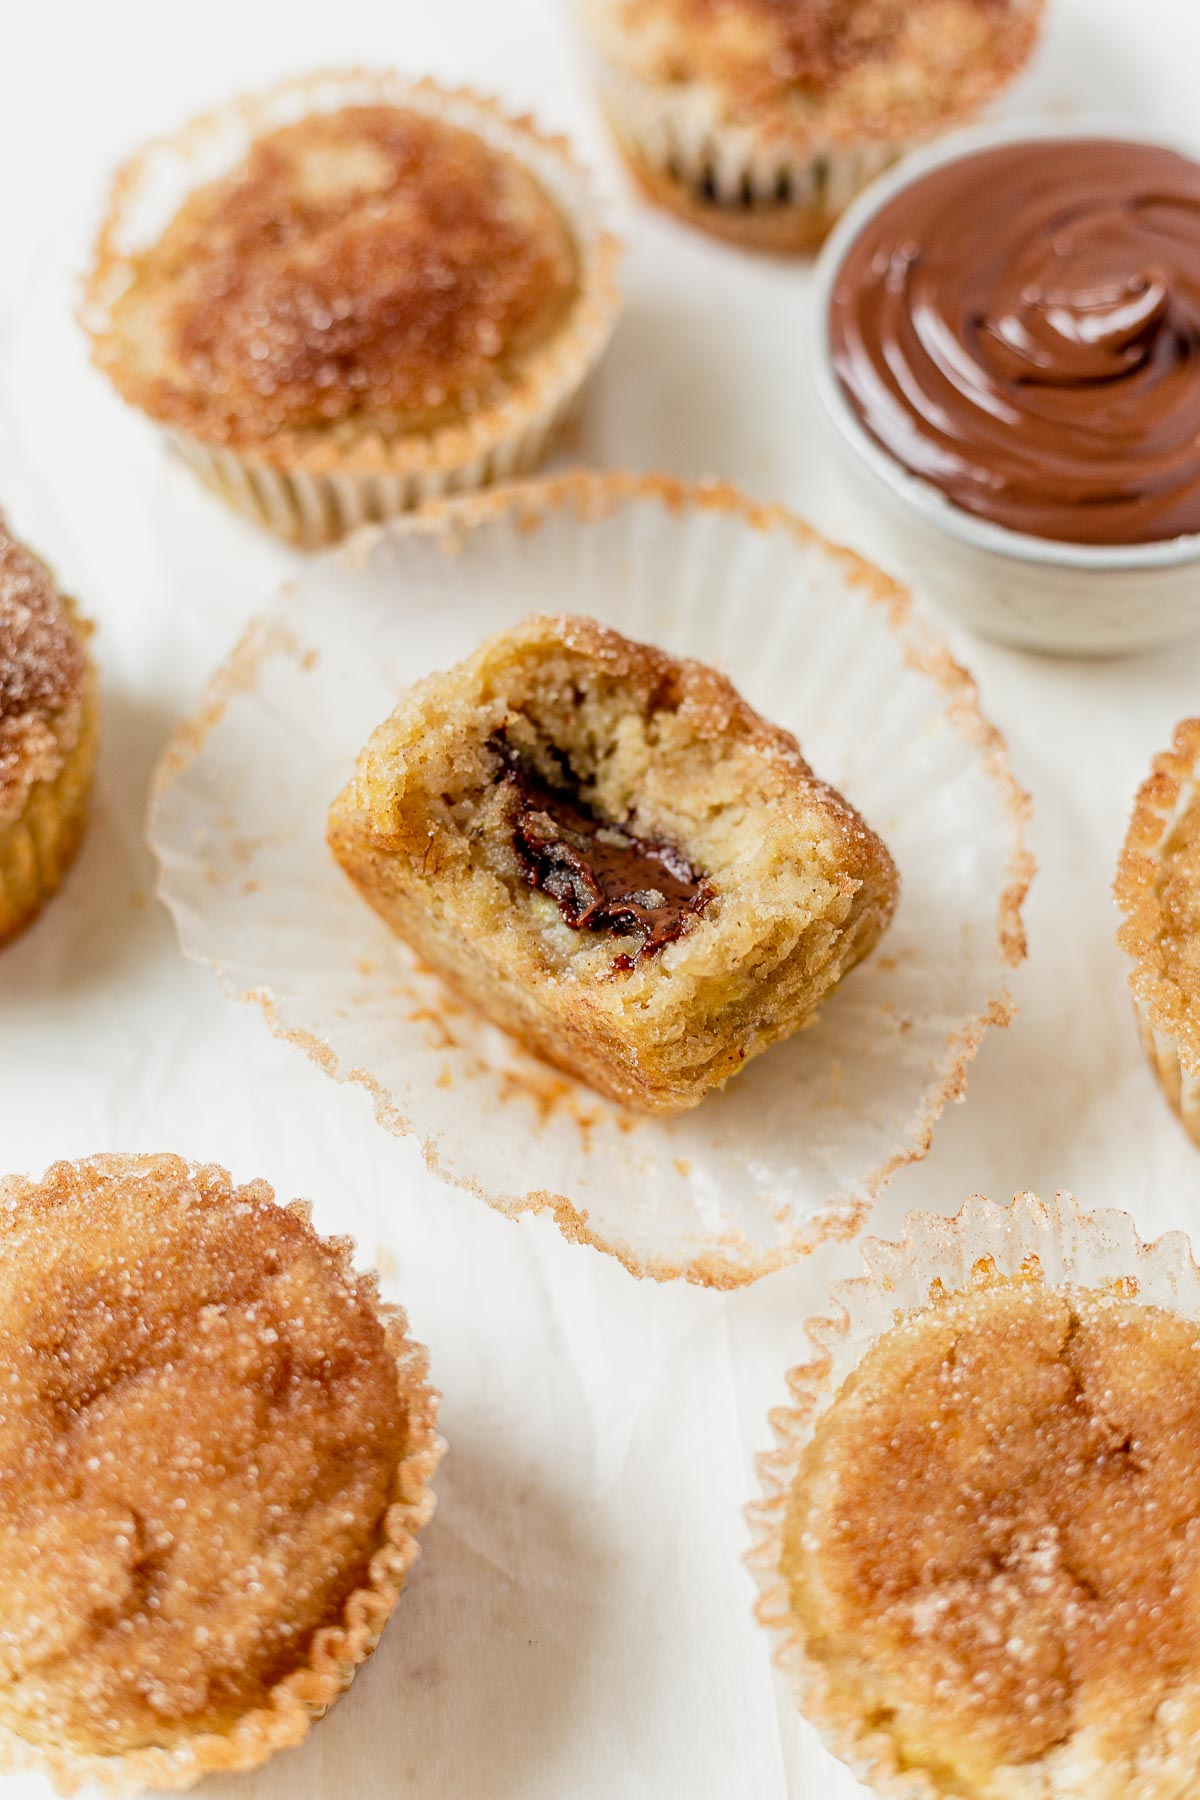 a banana nutella muffin with a bite taken out sitting inside a paper muffin liner with more muffins surrounding it